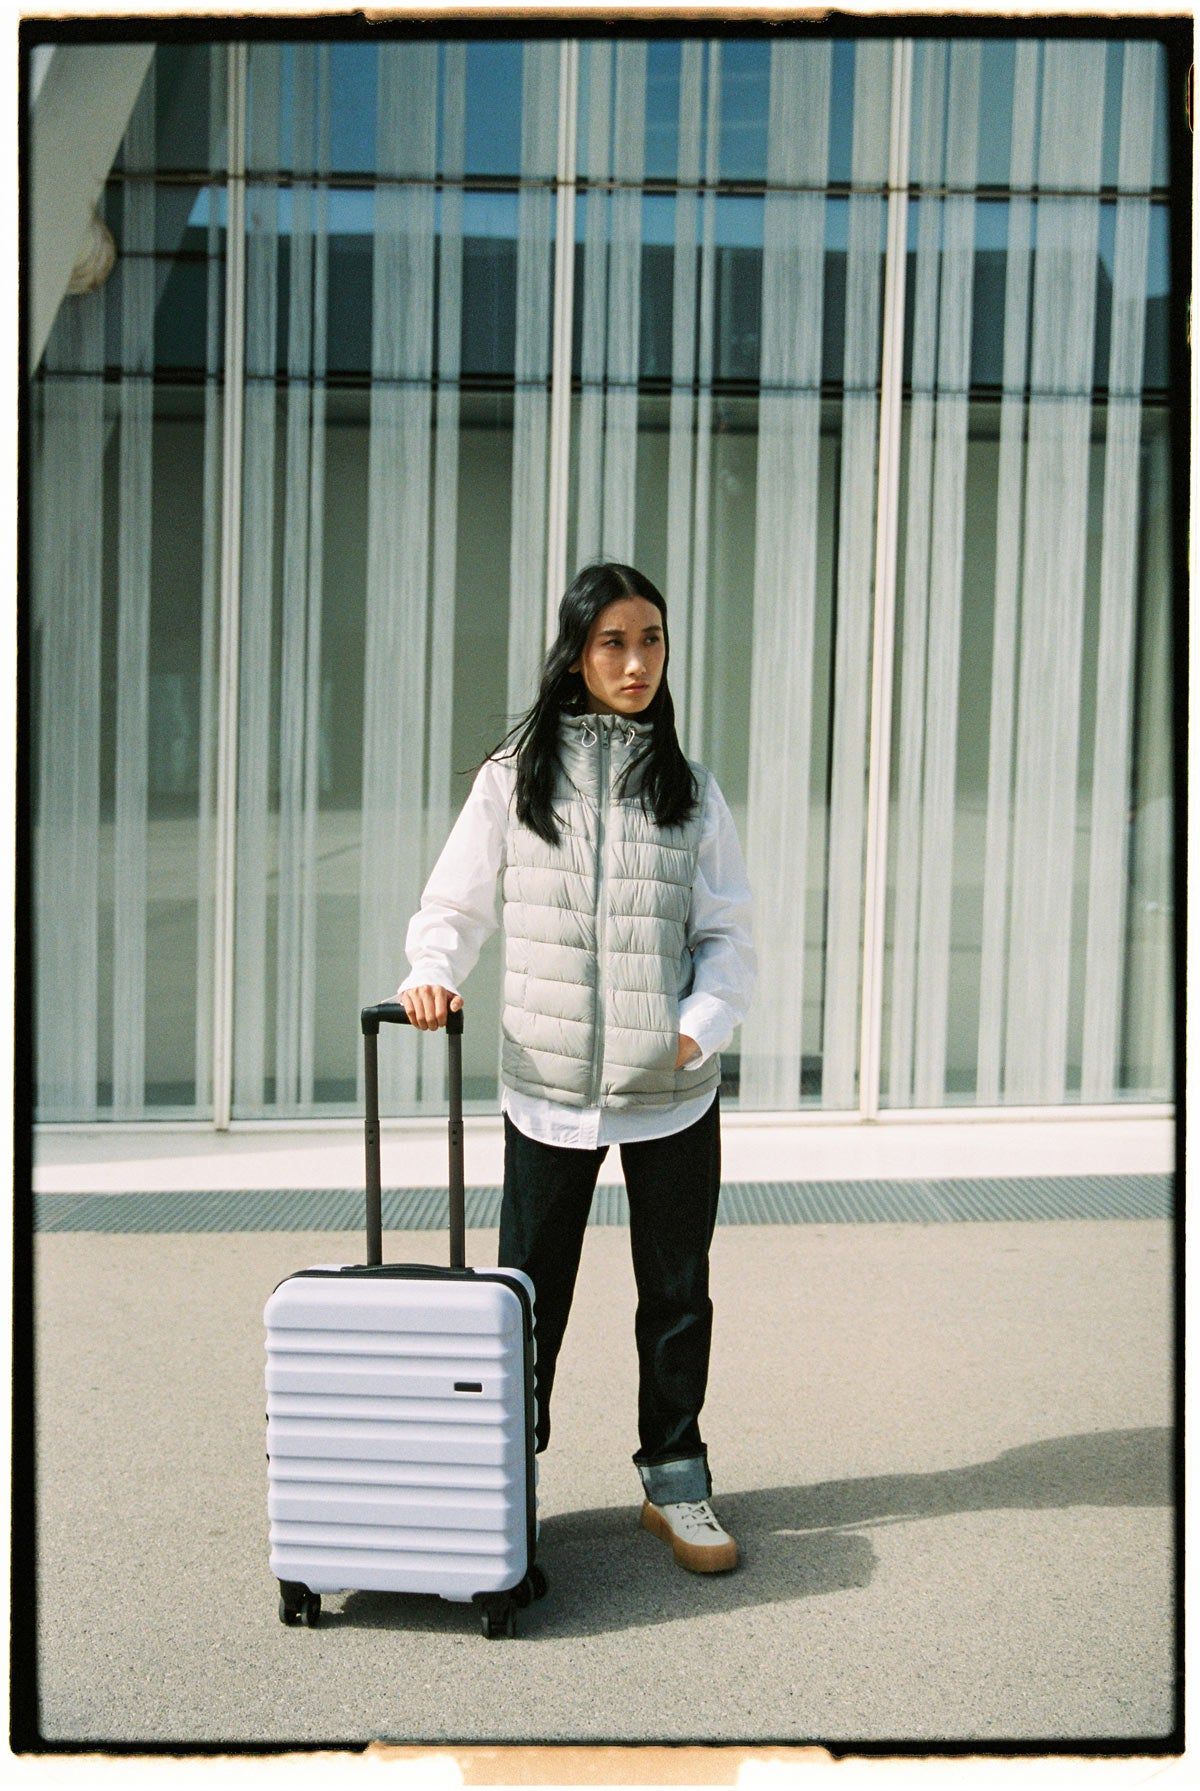 Image of Antler Clifton suitcase in grey with model